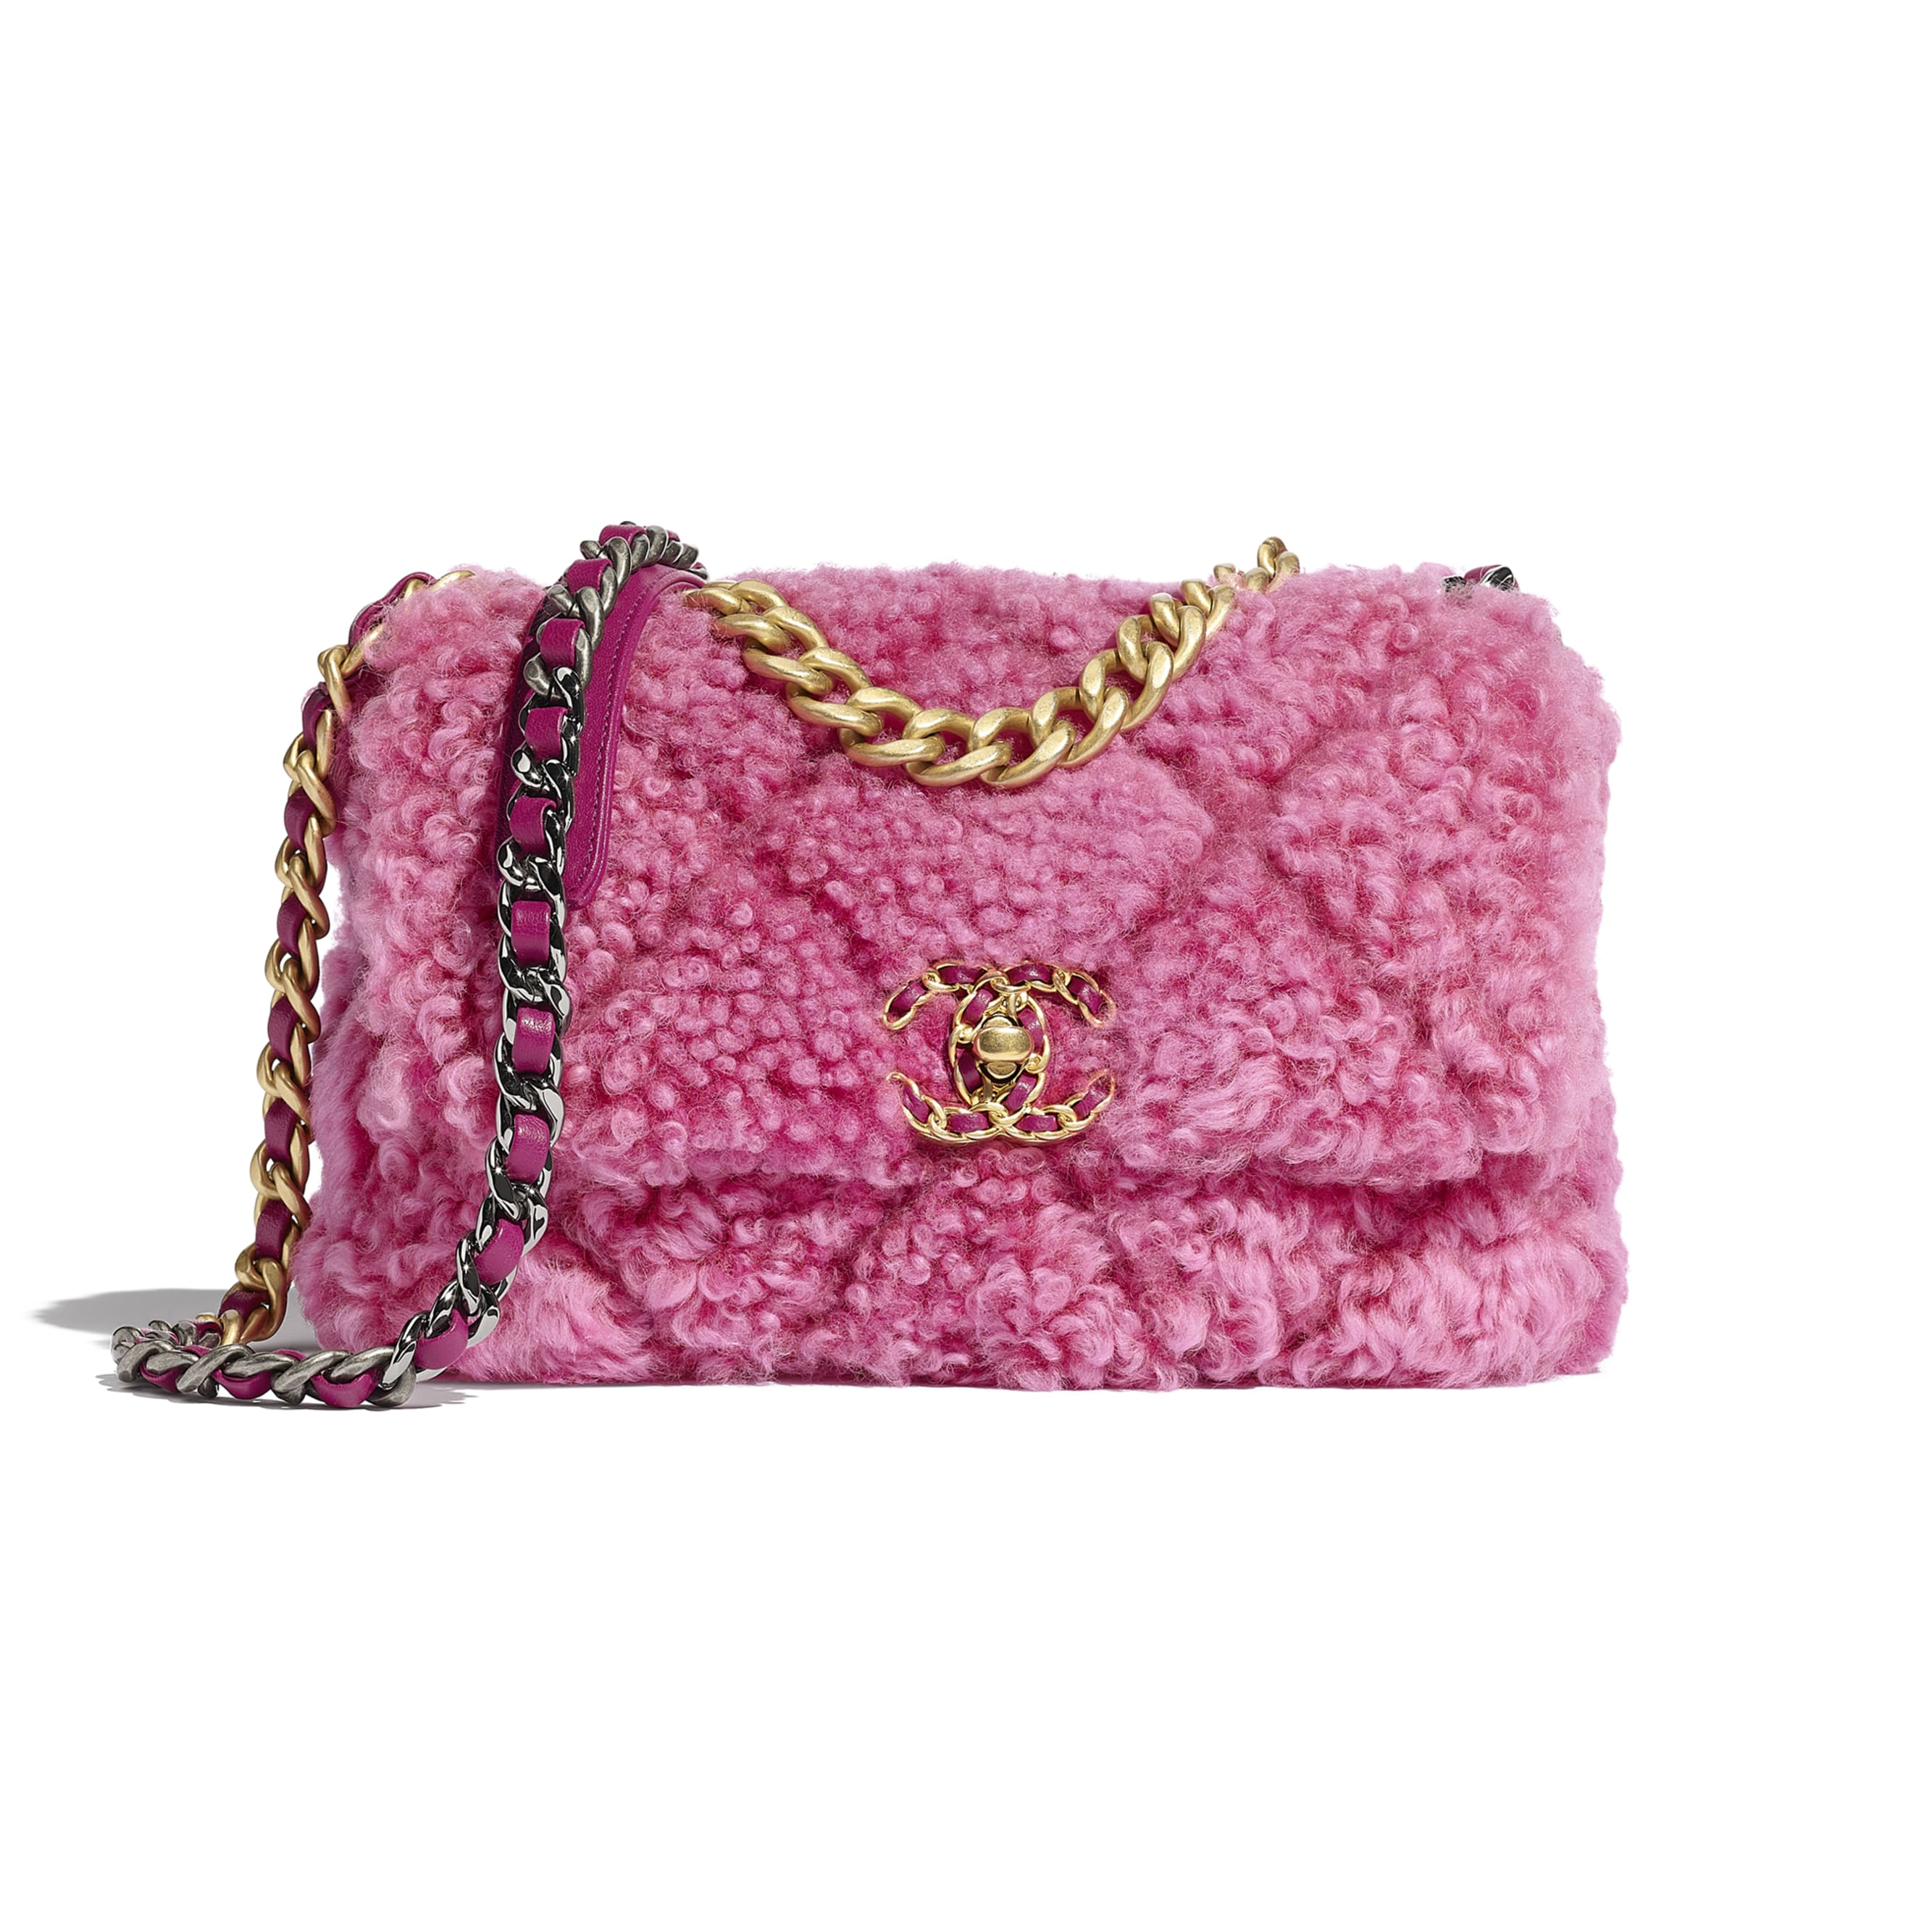 CHANEL 19 Flap Bag - Pink - Shearling Sheepskin, Gold-Tone, Silver-Tone & Ruthenium-Finish Metal - CHANEL - Default view - see standard sized version